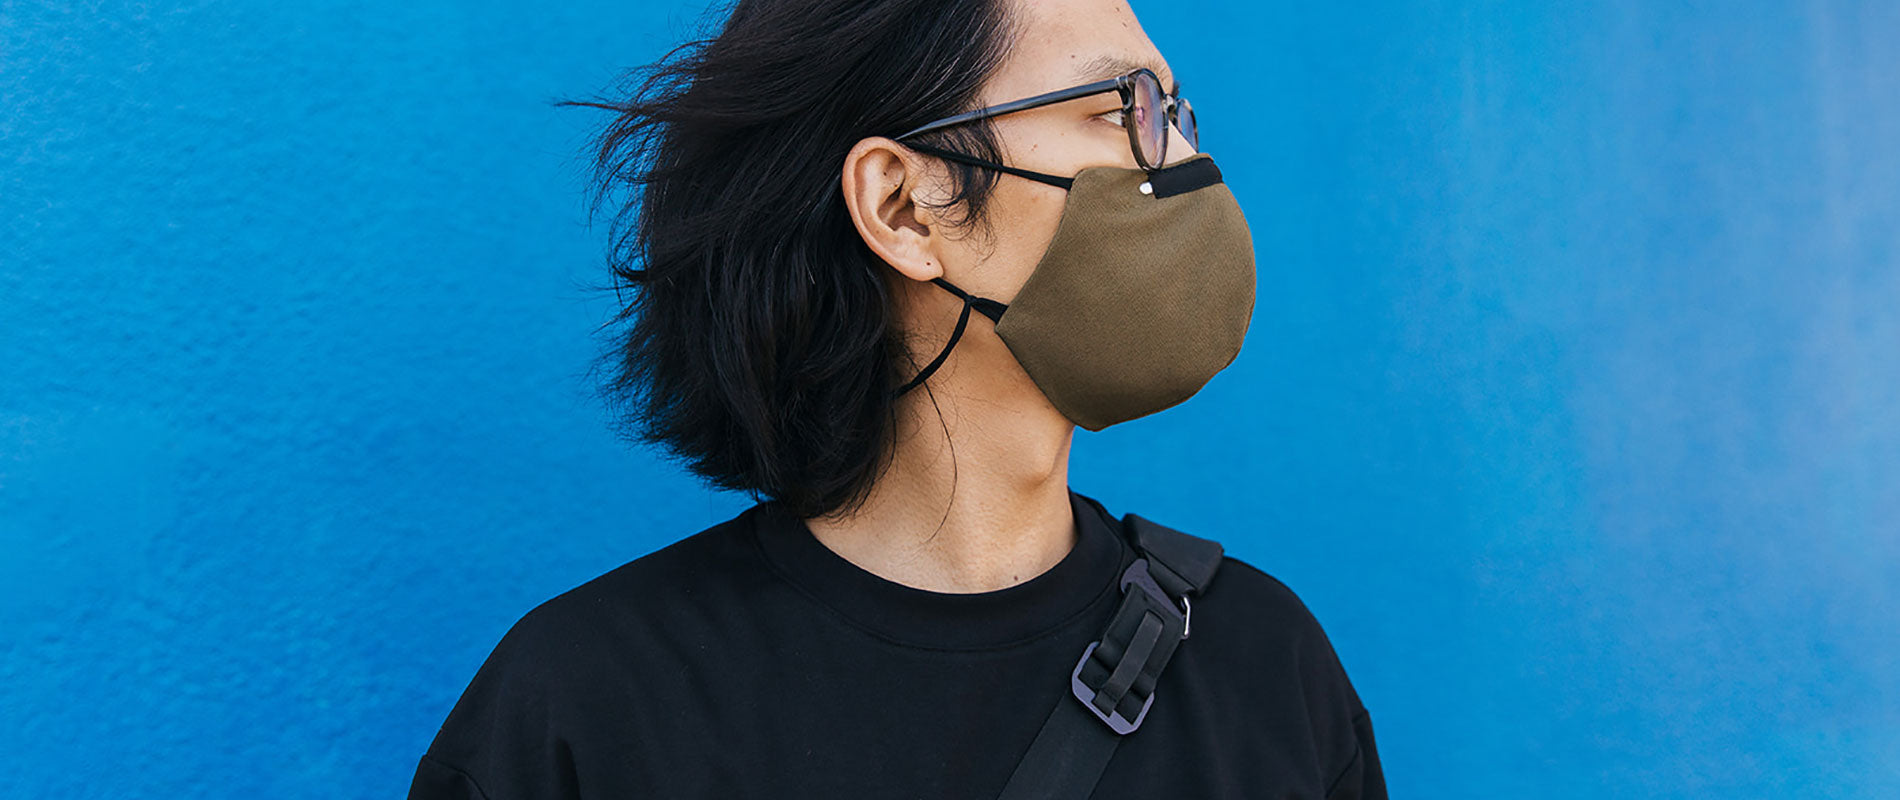 Man wearing a Reusable Cloth Face Mask in Black